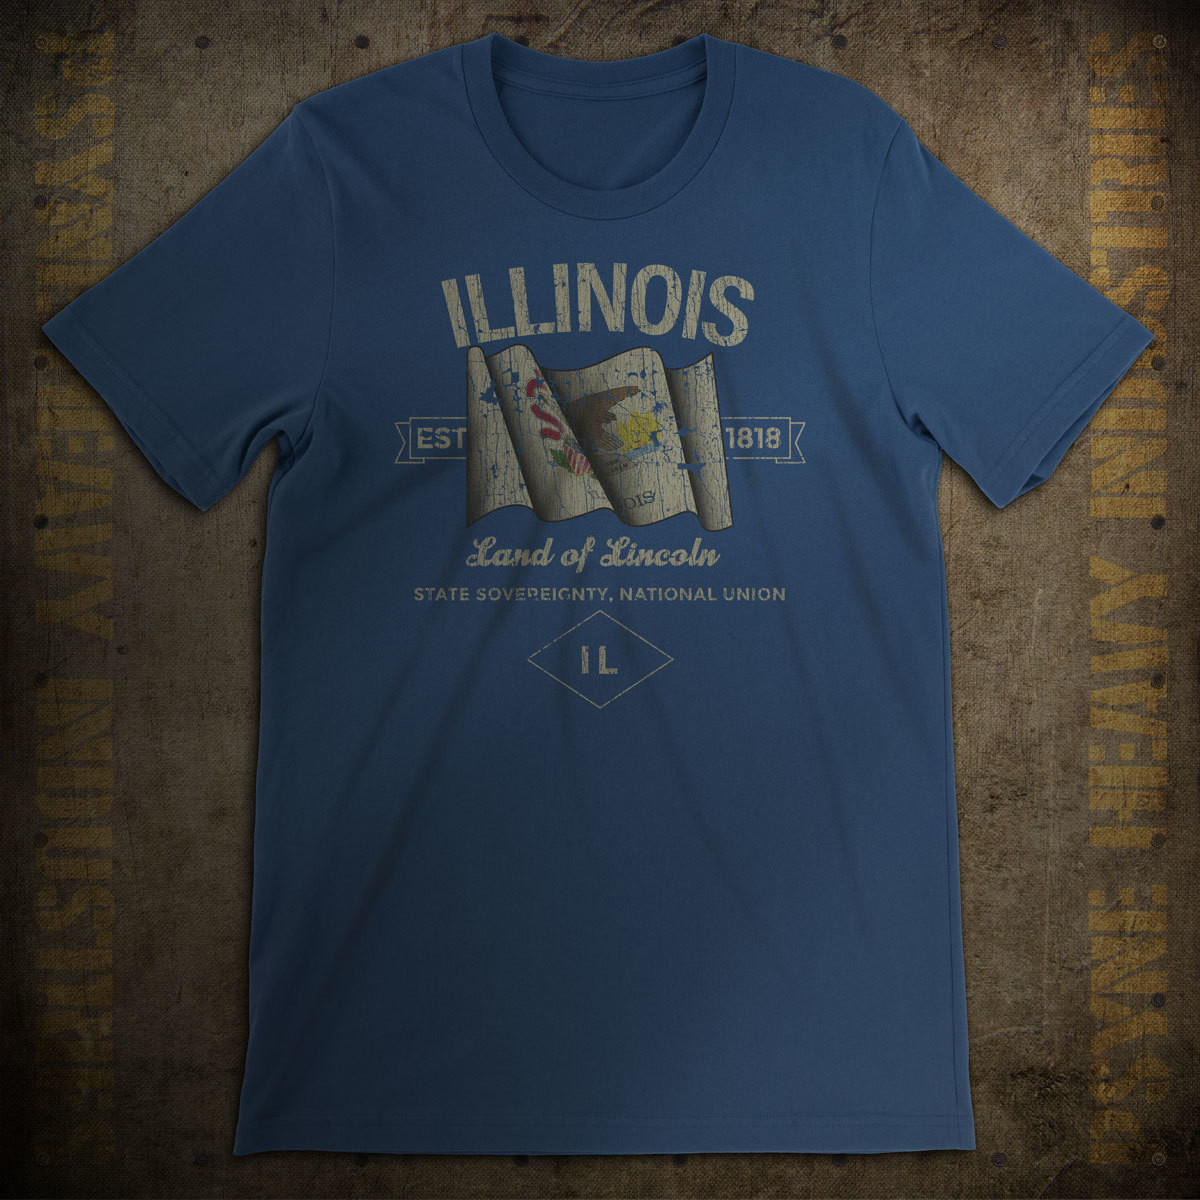 Illinois 1818 Vintage T-Shirt